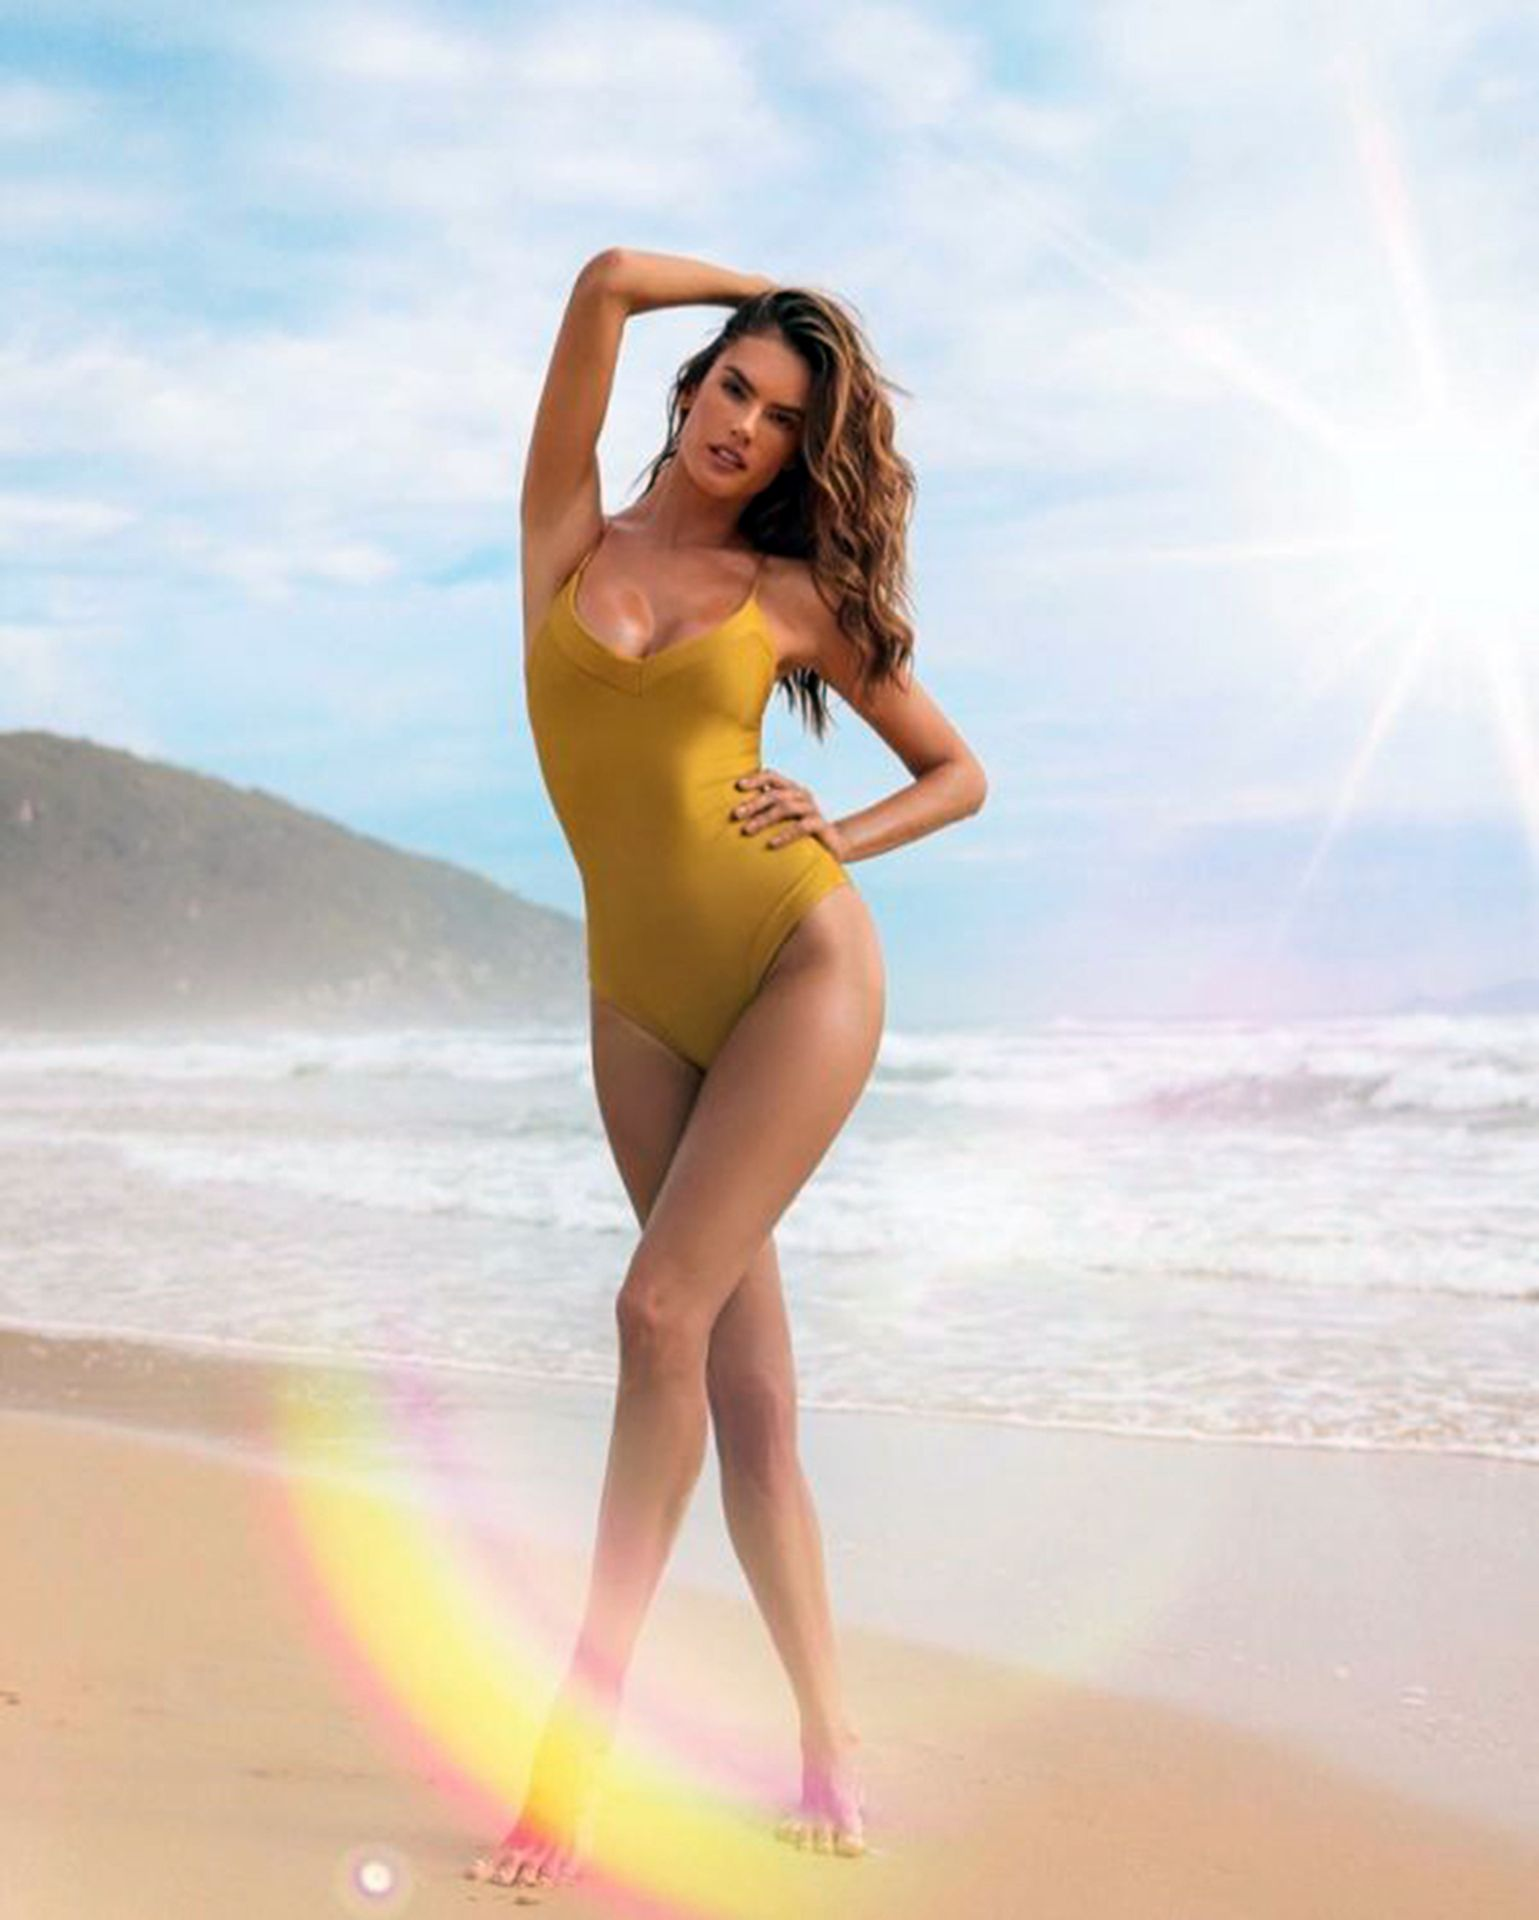 Alessandra Ambrosio Presents The New Campaign Of Her Brand Gal Floripa 0003